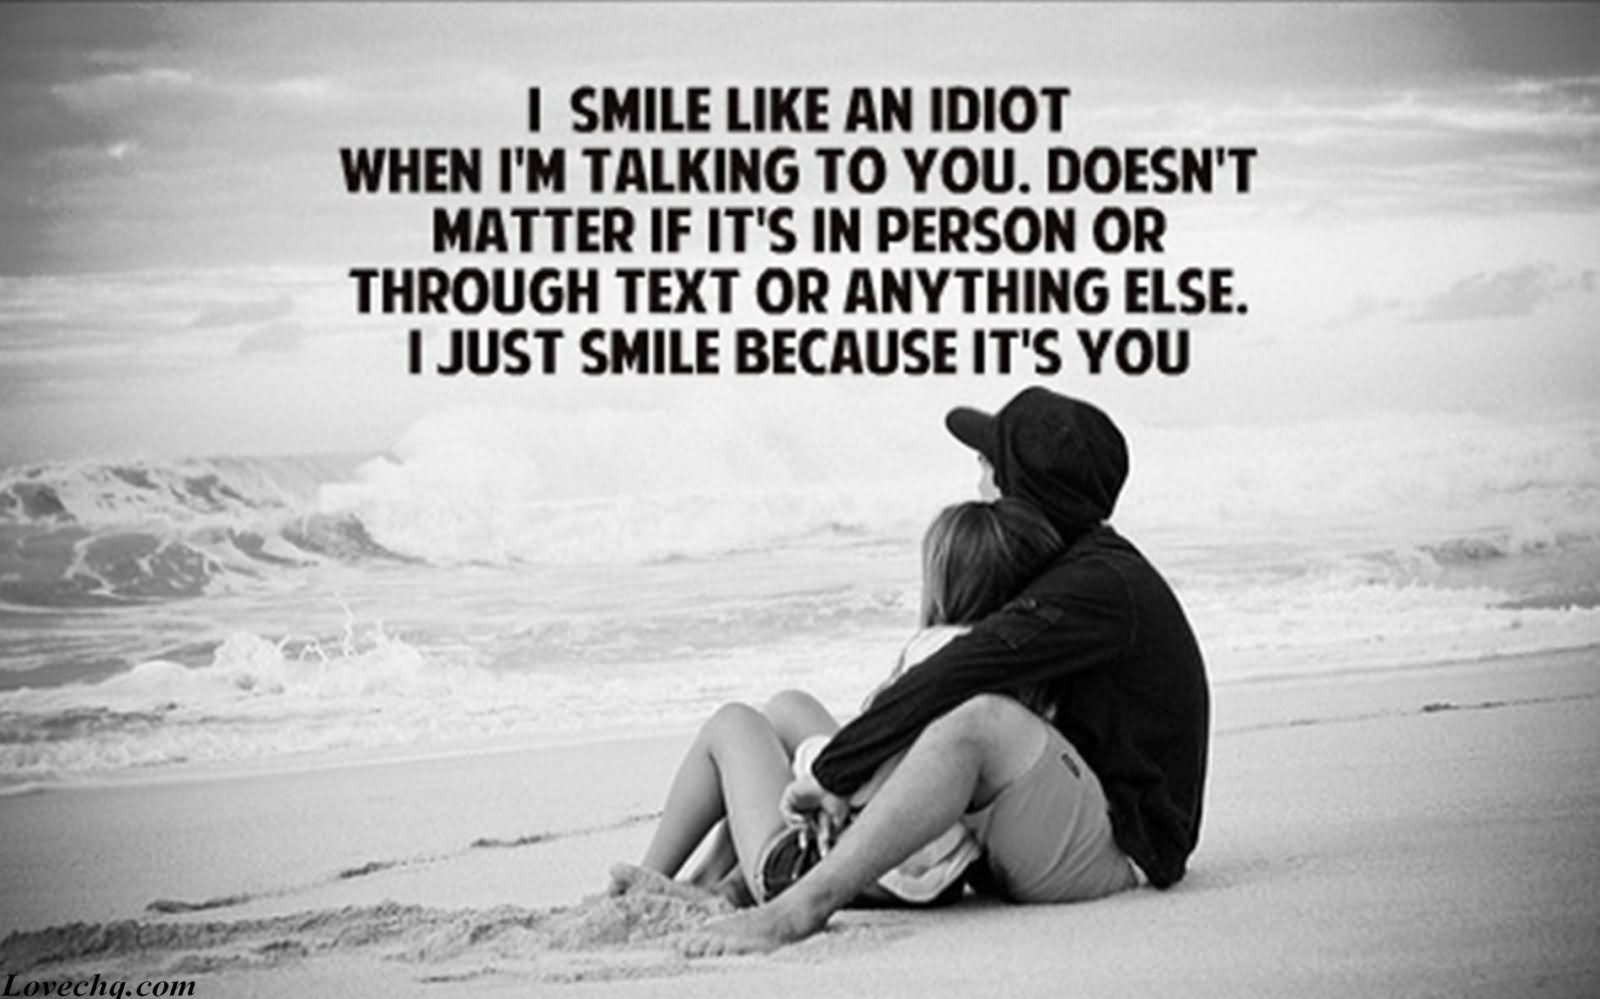 I Smile Like An Idiot When Iu0027m Talking To You,doesnu0027t Matter If Its In  Person Or Through Text Or Anything Else. I Just Smile Because Its You